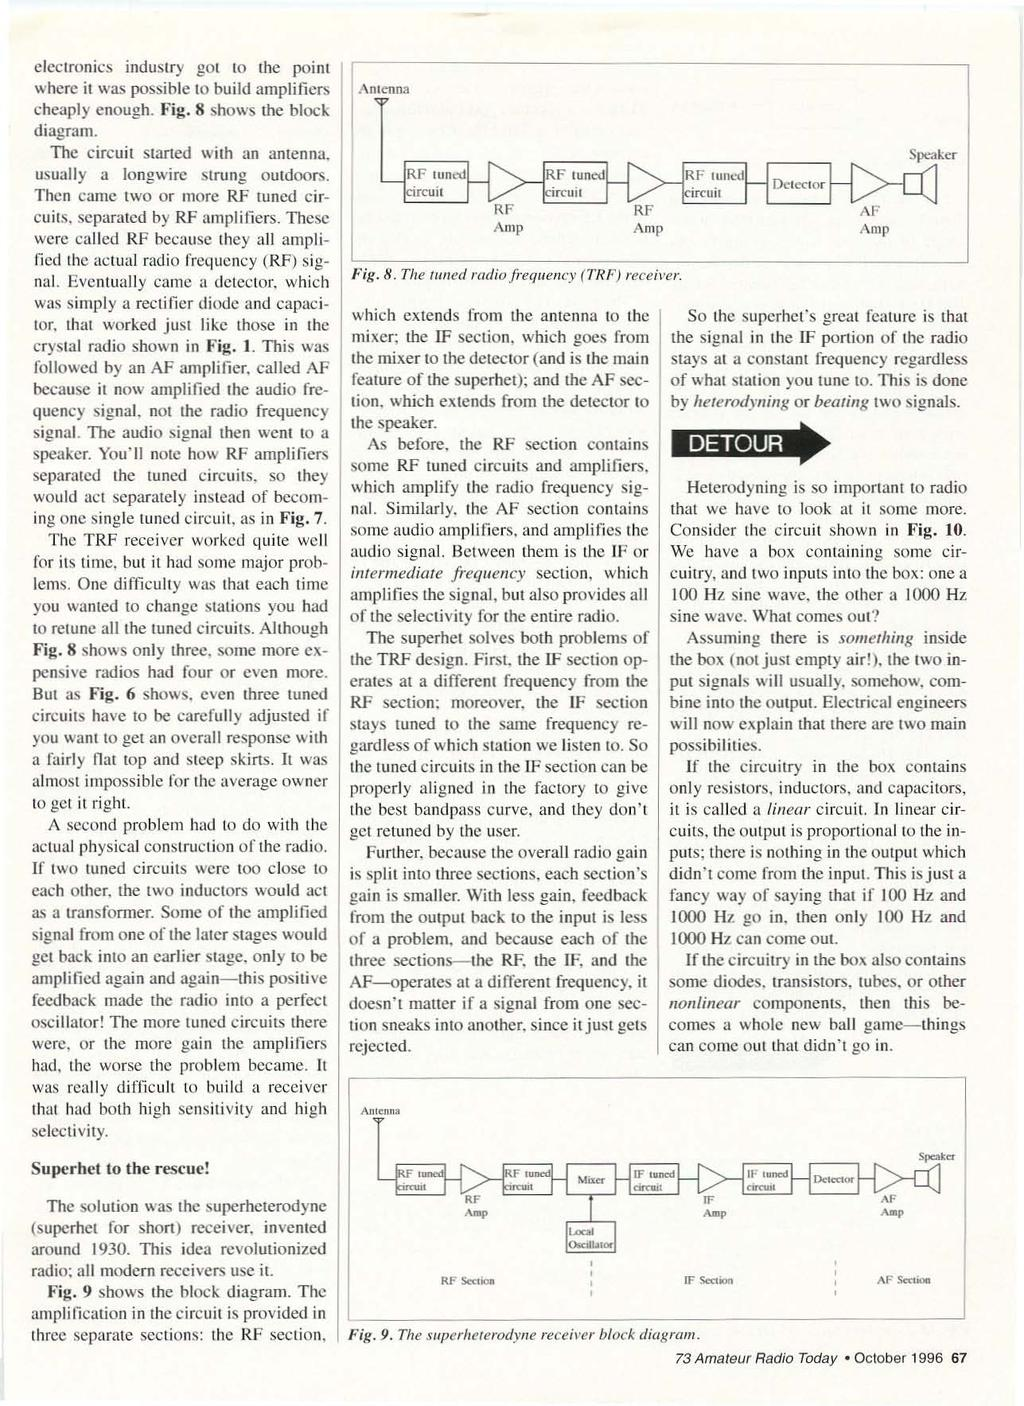 Qrp Low Power Fun Including Ham Radio October 1996 Issue 433 10113 Painless Fuse Box Usa 395 Canada 495 Multi Band Dipole Field Day Pdf